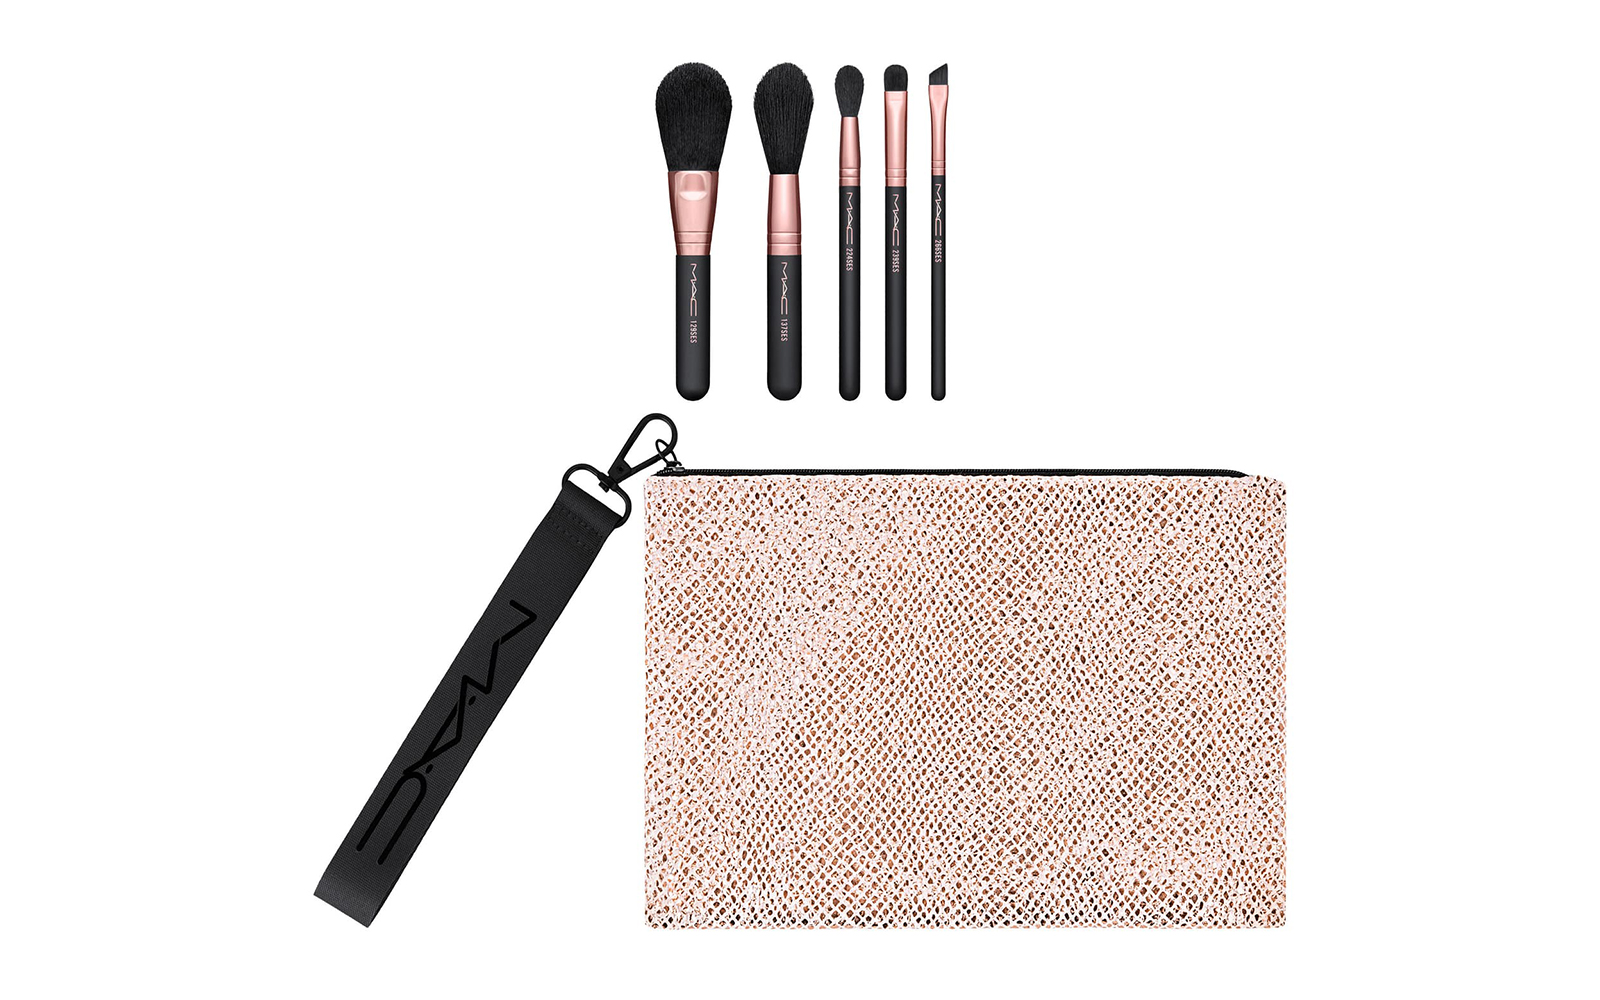 MAC Up Close and Personal Travel Size Brush Set